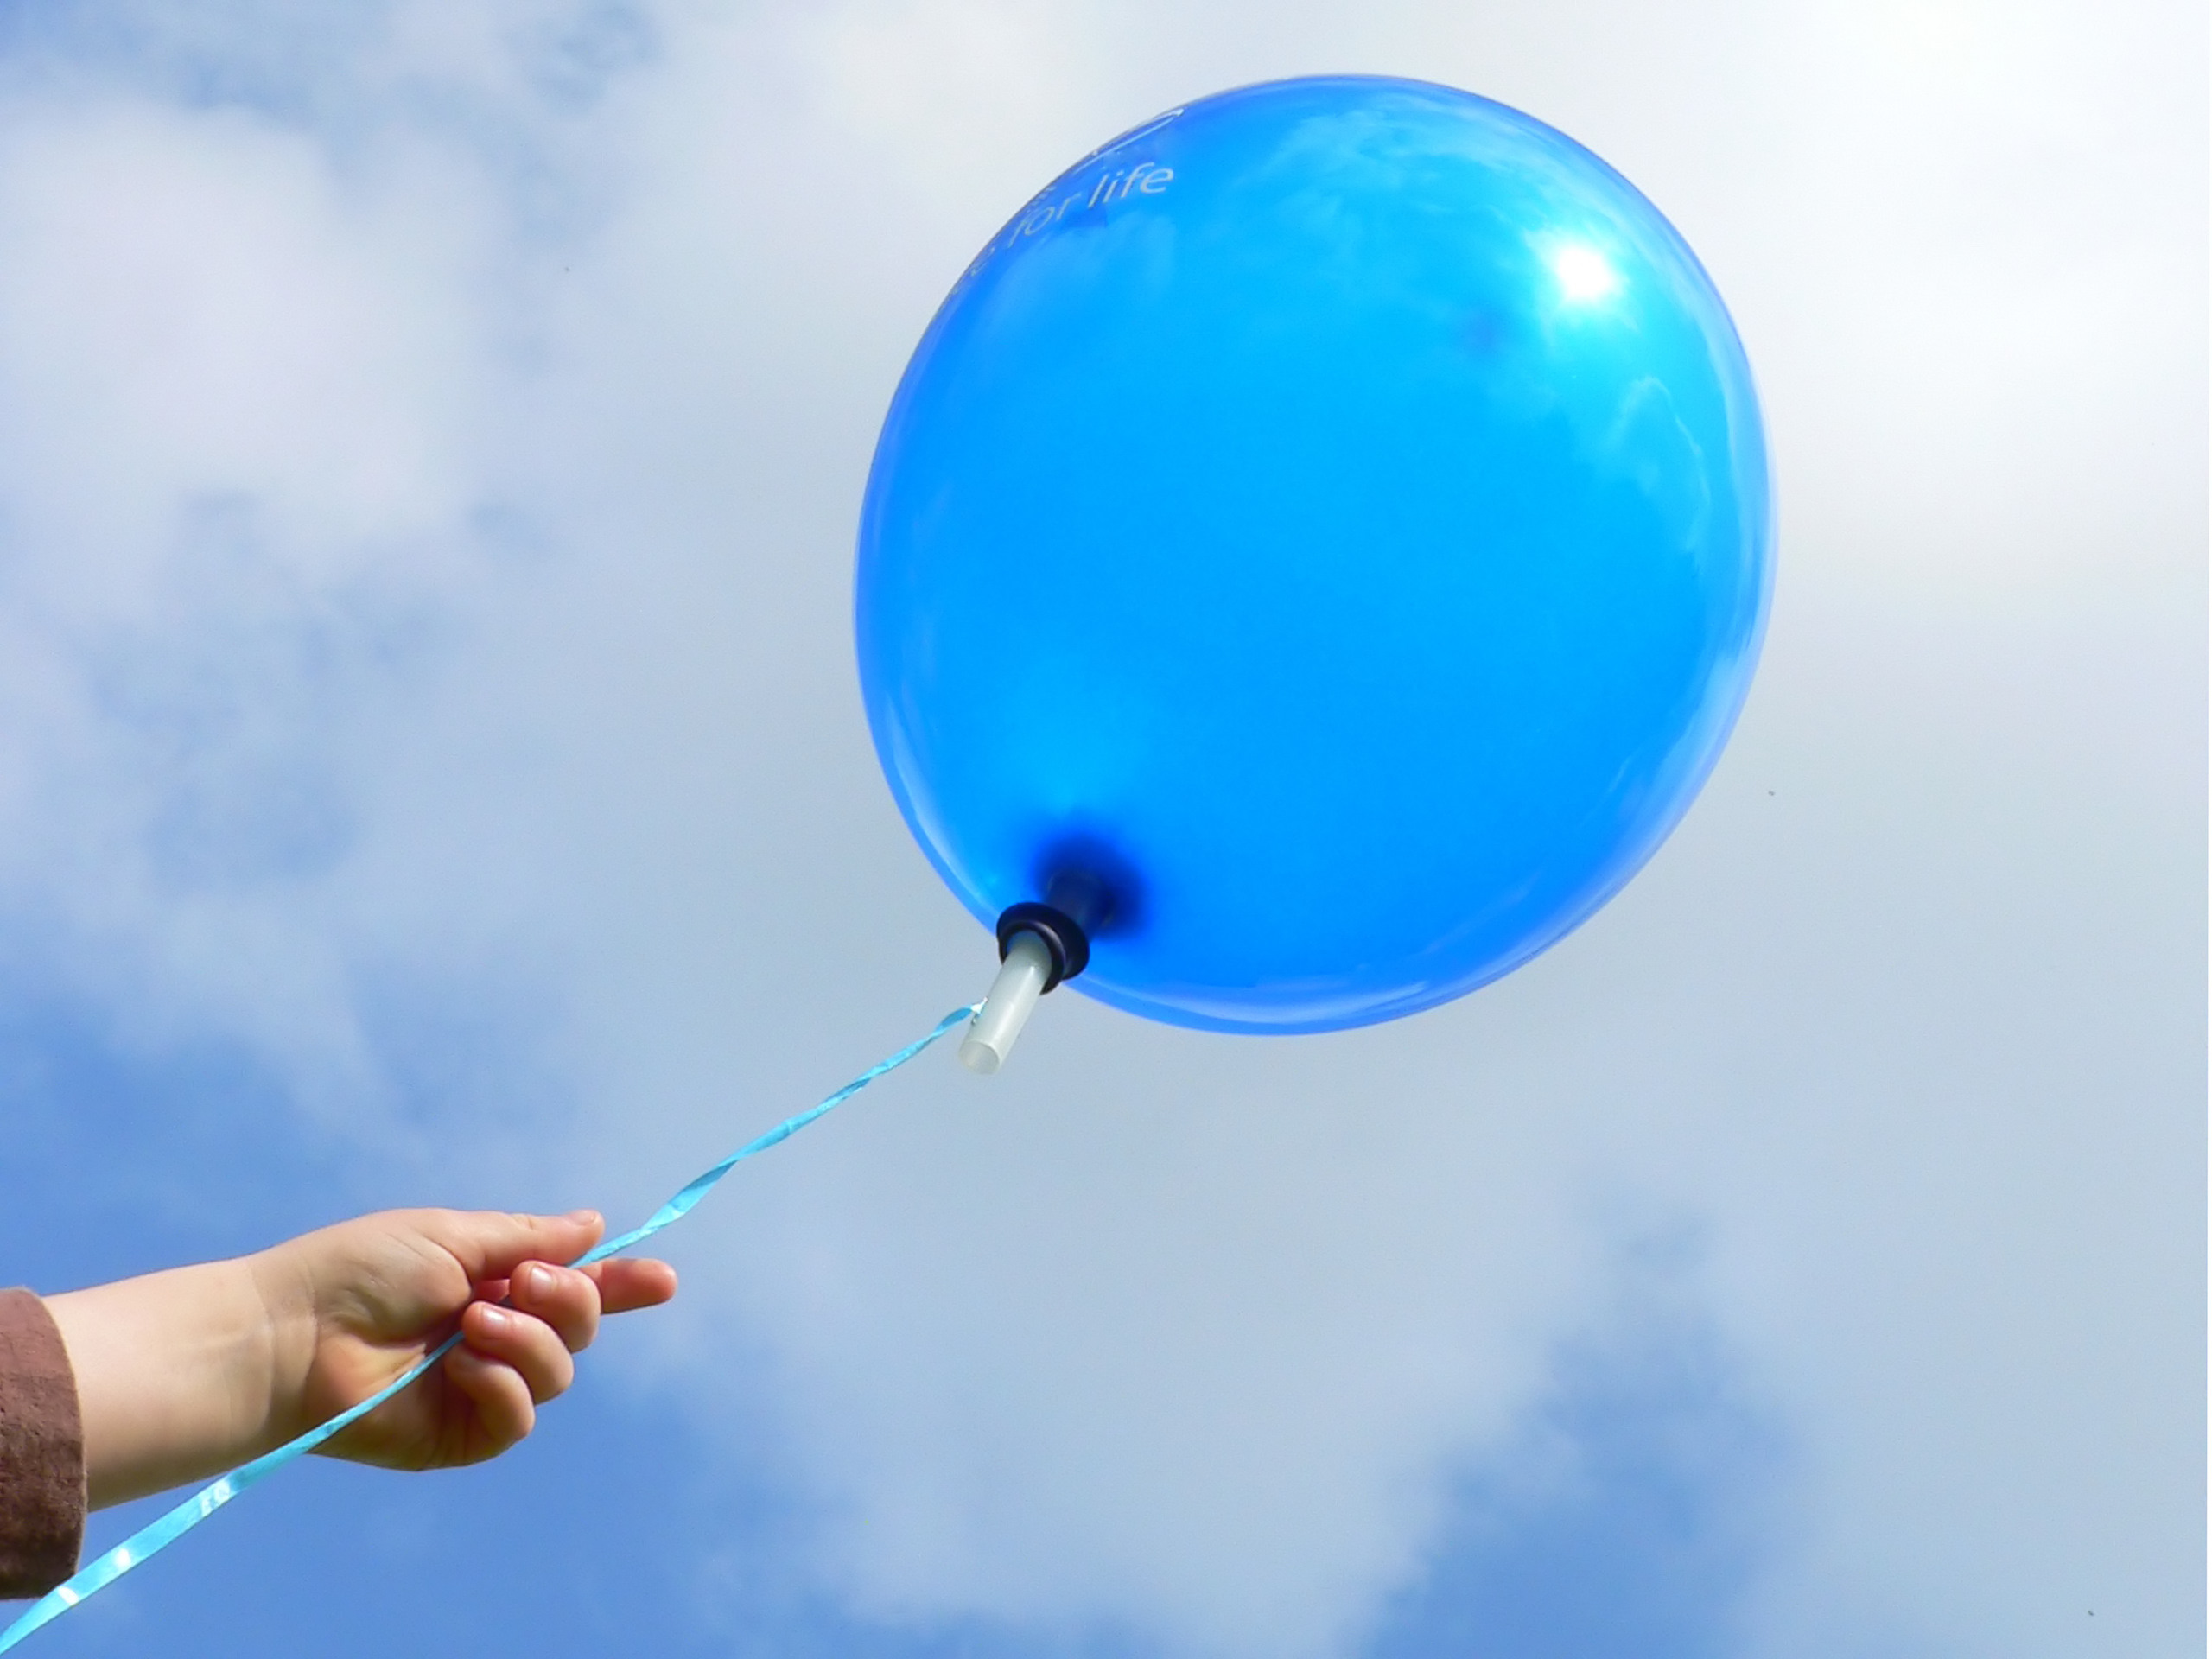 THE FLOATING BALLOON | Real Life Ministries USA